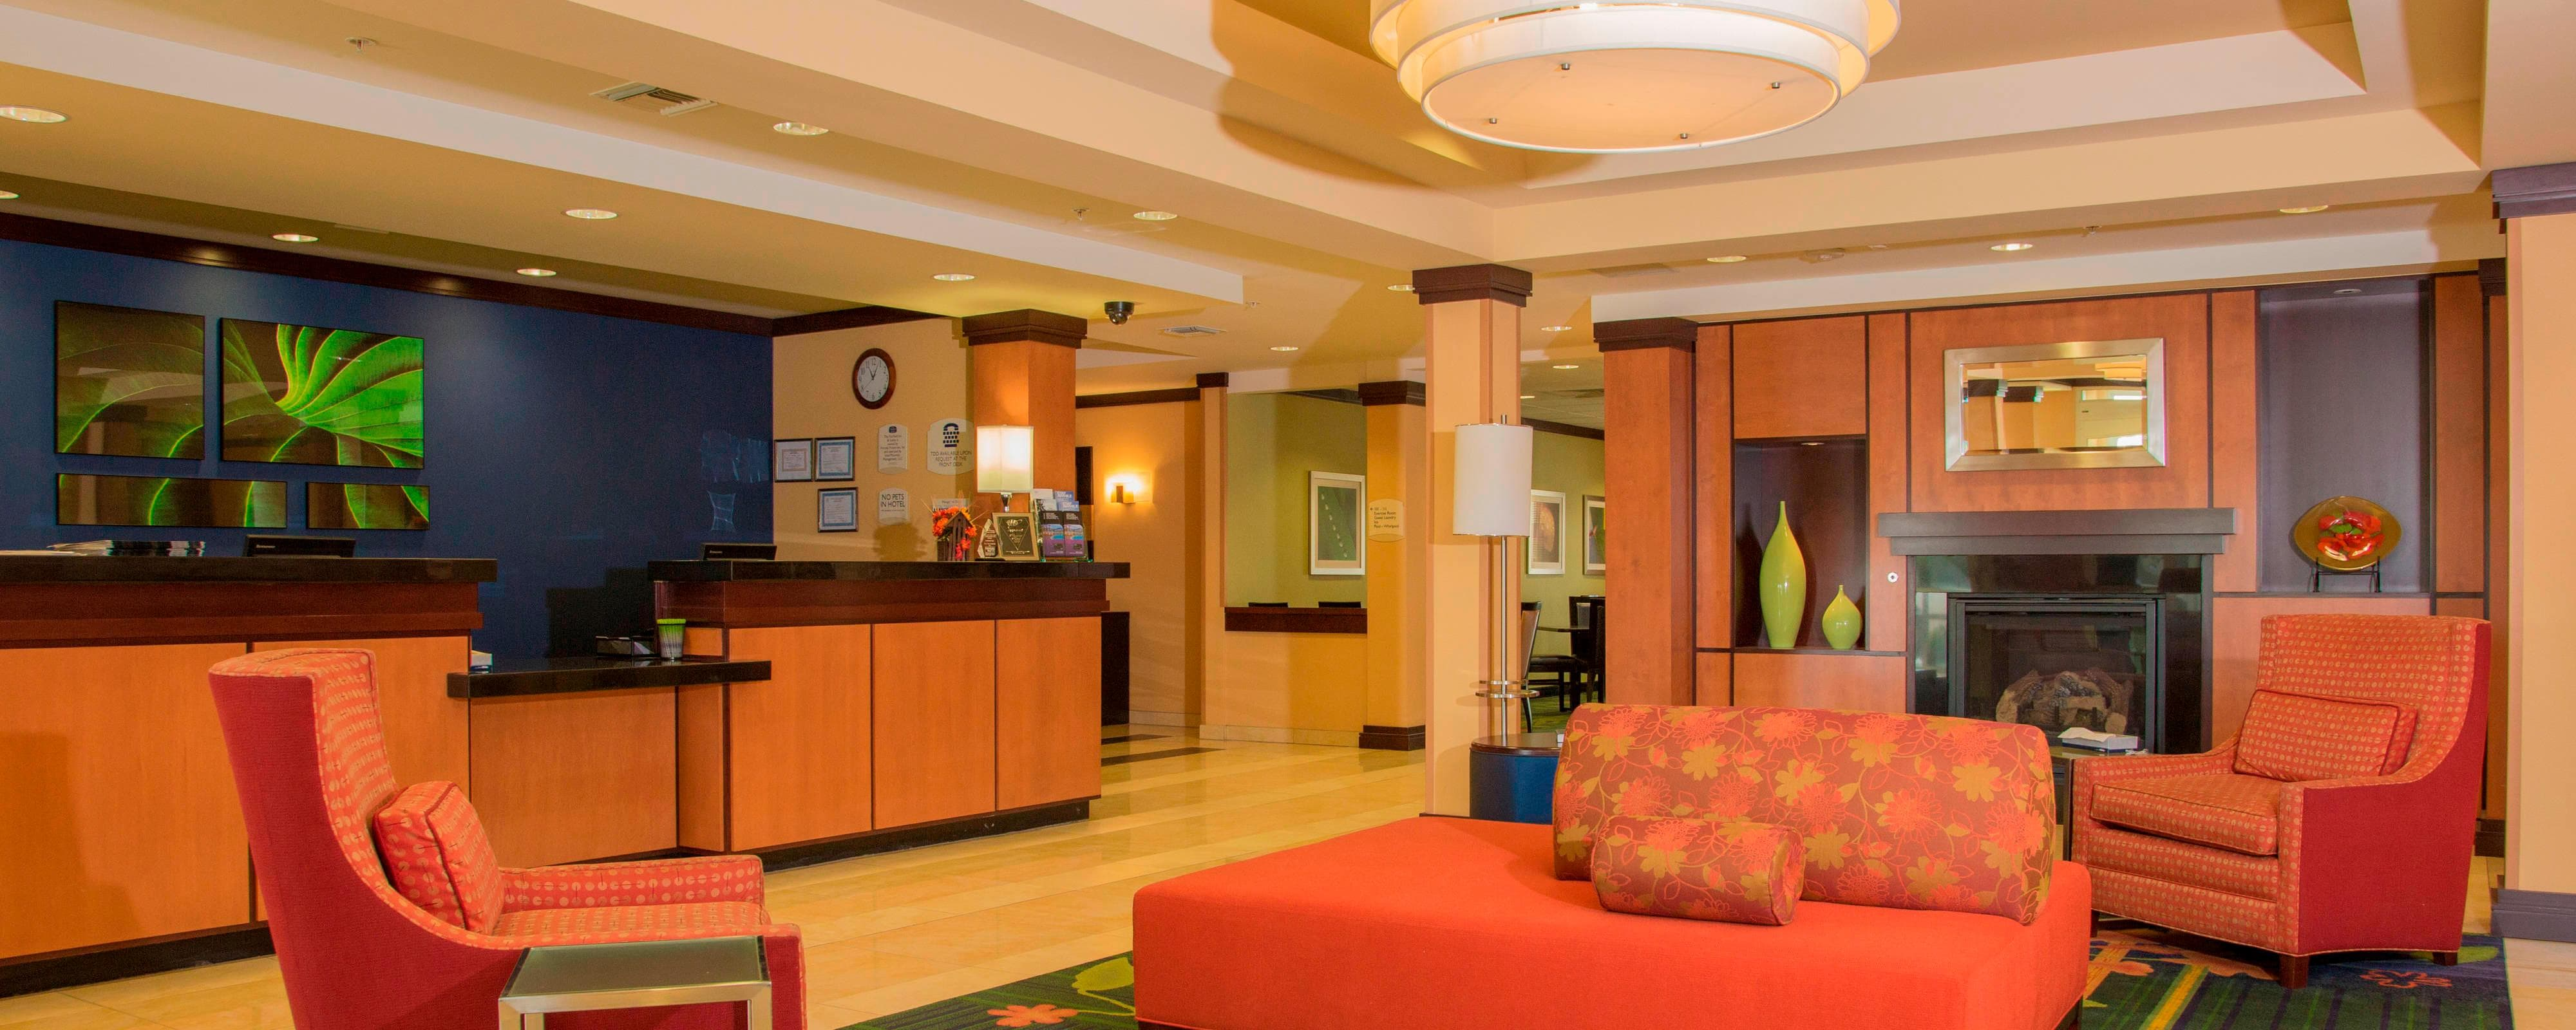 Carlsbad, NM Hotel | Fairfield Inn & Suites Carlsbad